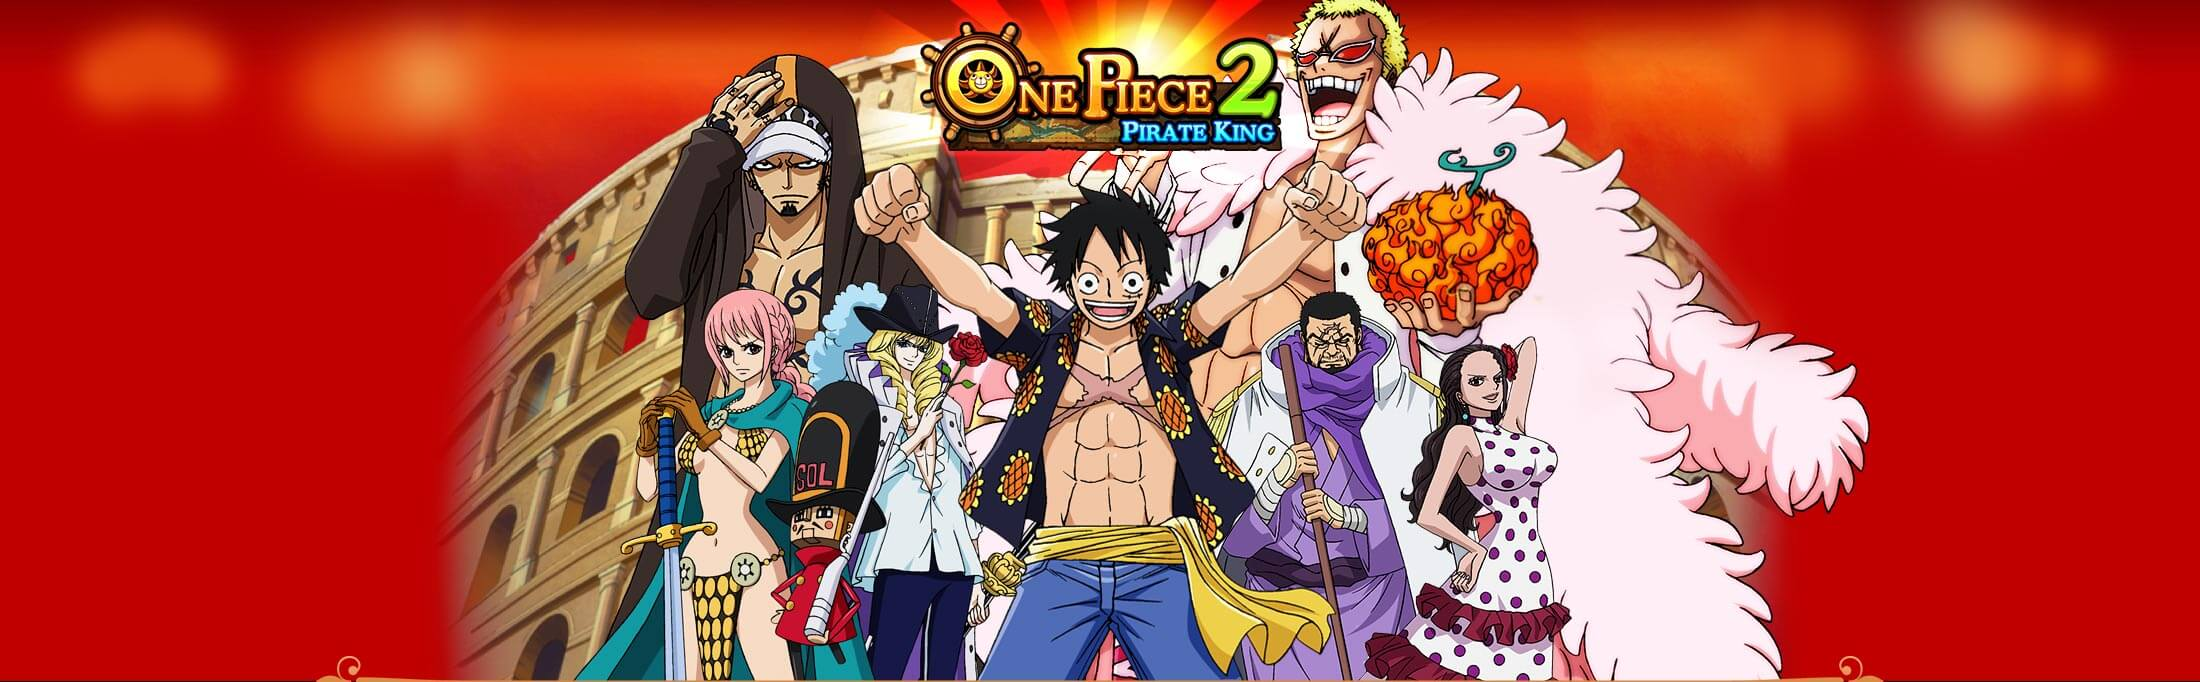 5fd86d8c7b4 One Piece Online 2: Pirate King Game | One Piece Forum